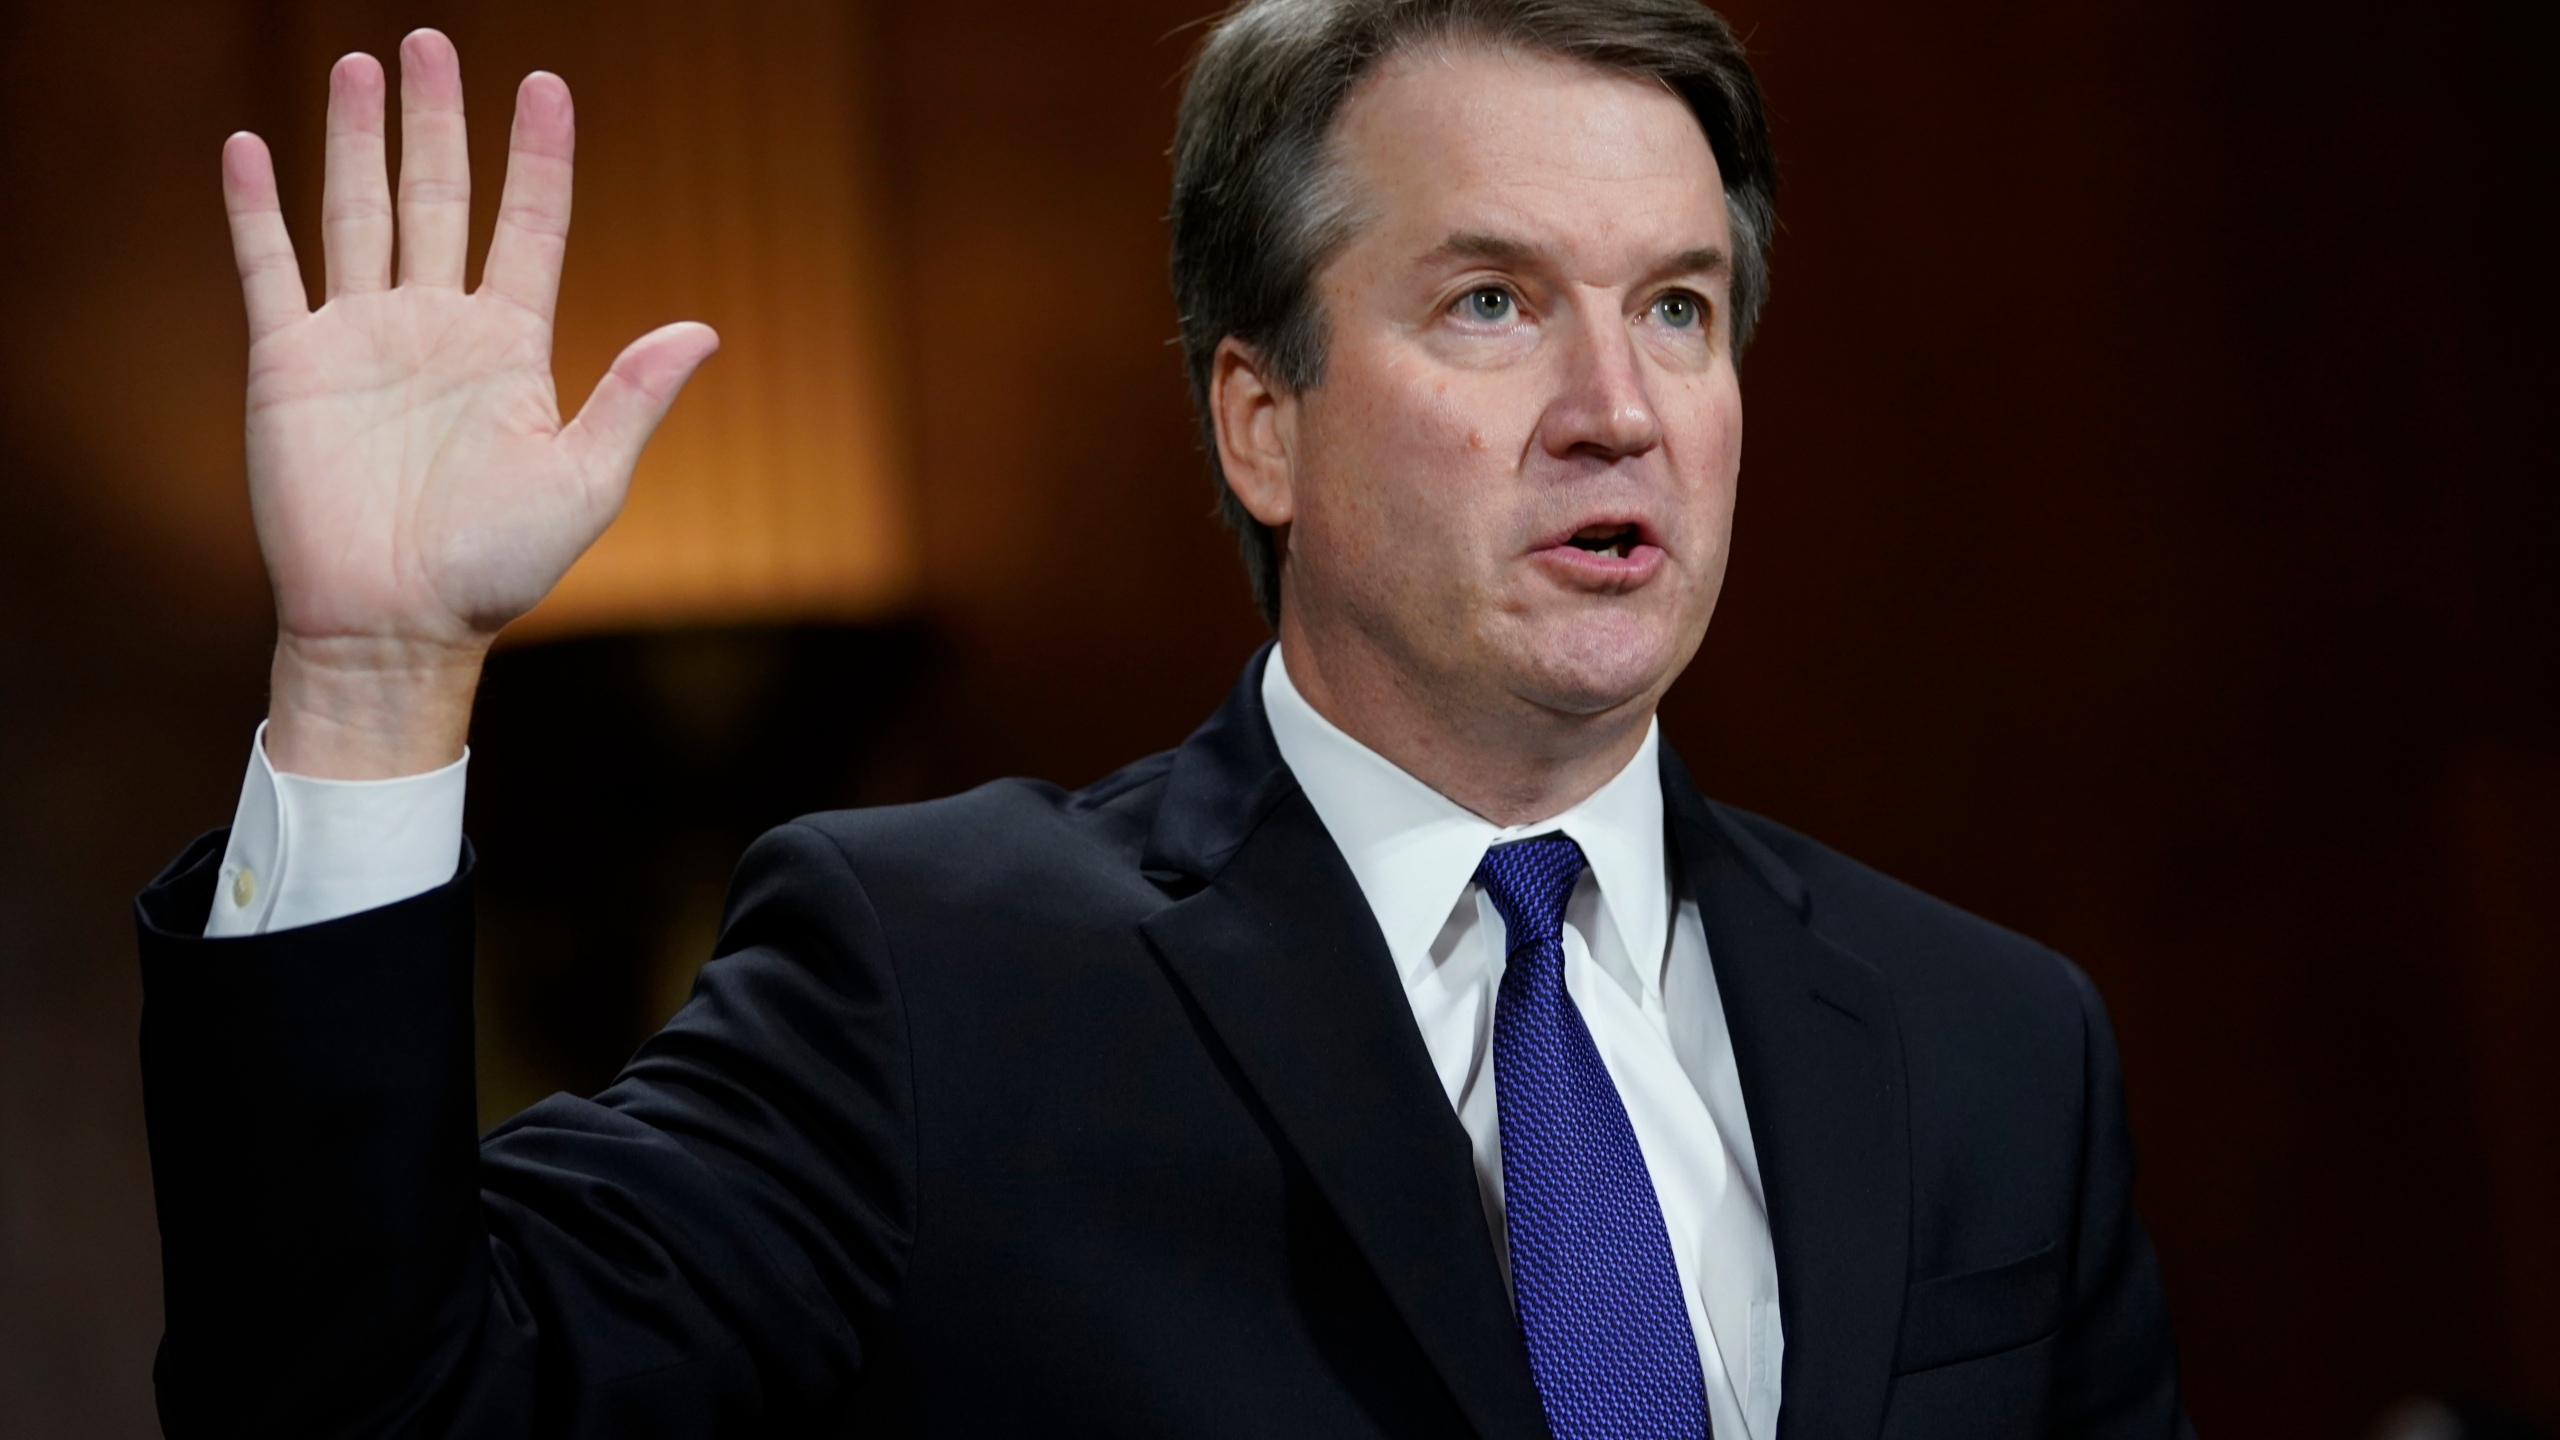 Supreme_Court_Kavanaugh_42529-159532.jpg78538858